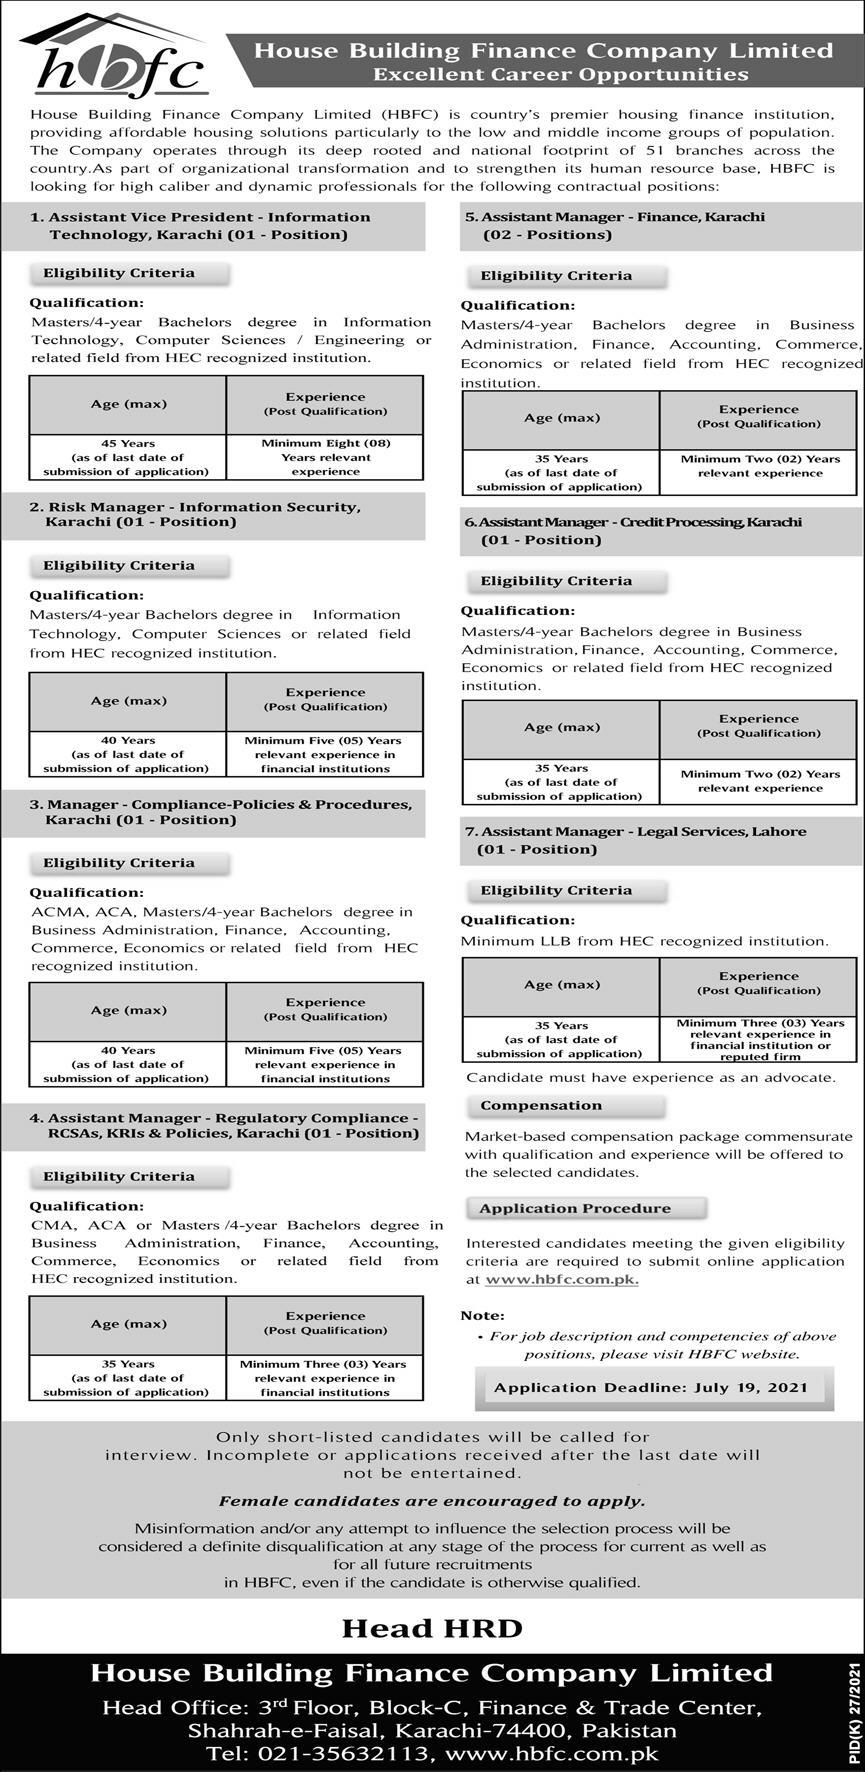 House Building Finance Company Limited HBFCL Jobs 2021